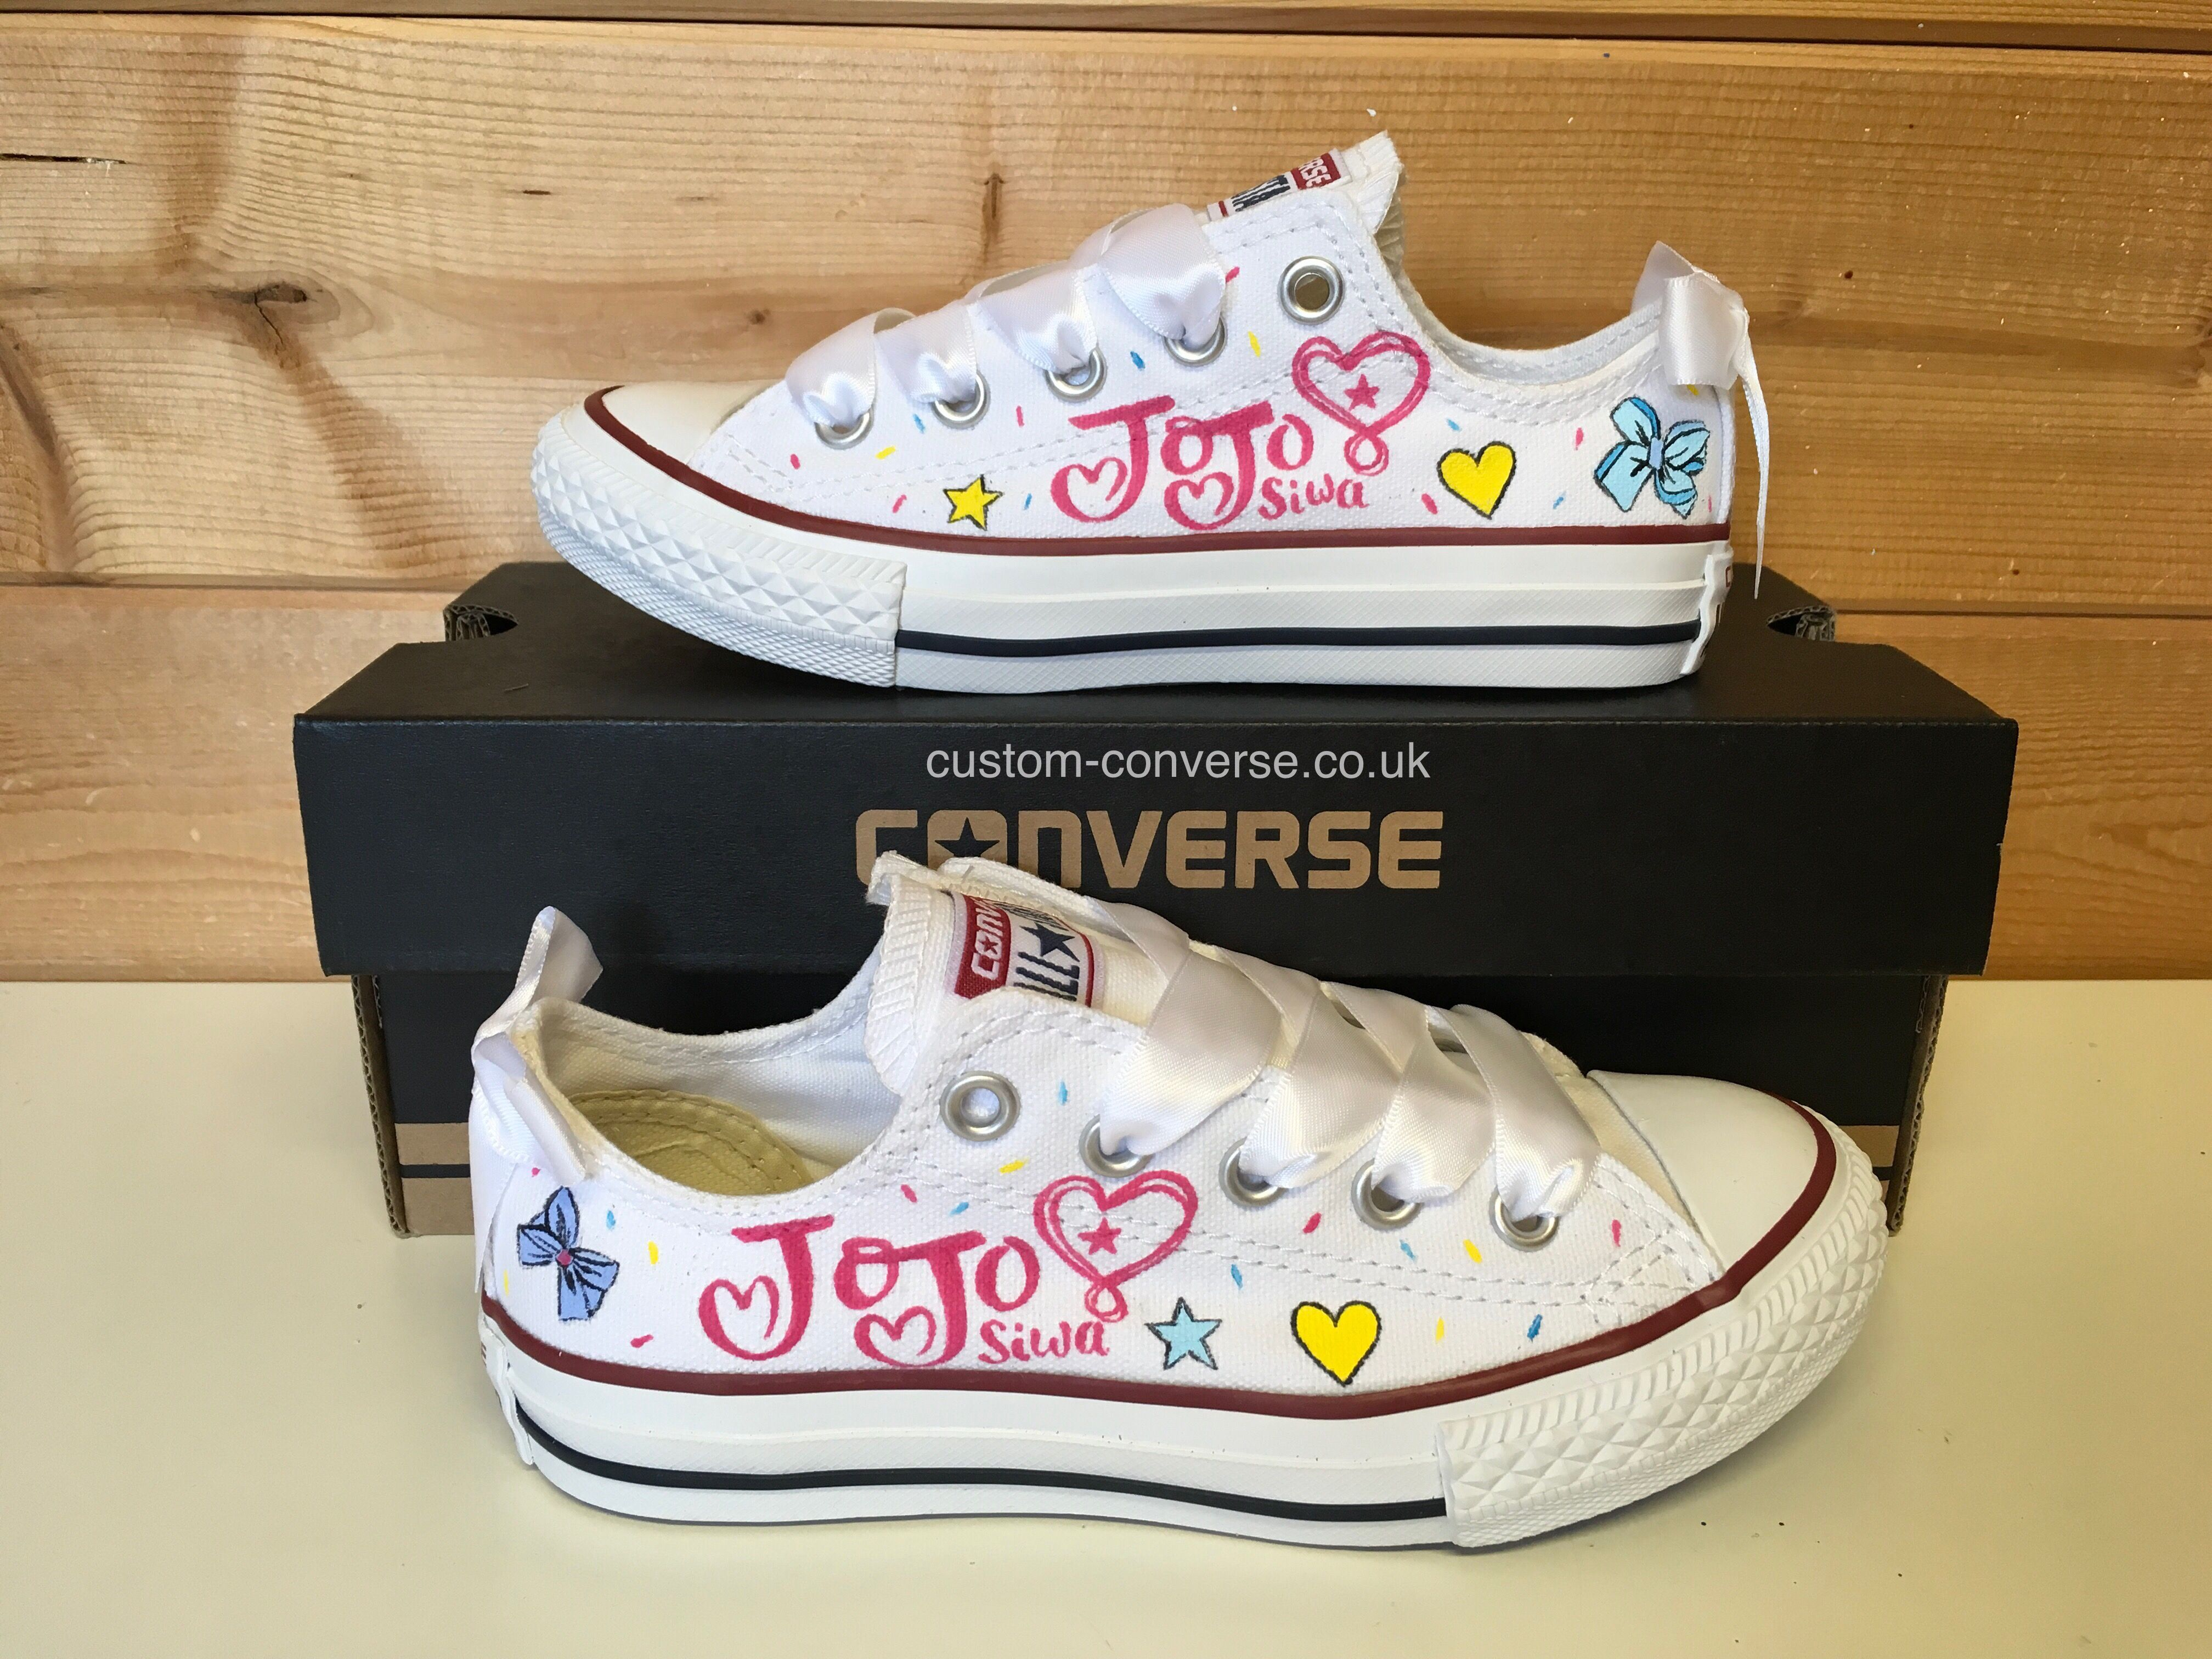 bcd353b1c32c JoJo Siwa Low Top Converse shoes with white ribbon laces and Bows  converse   jojosiwa  customconverse  handpainted  chucks  jojo  bows